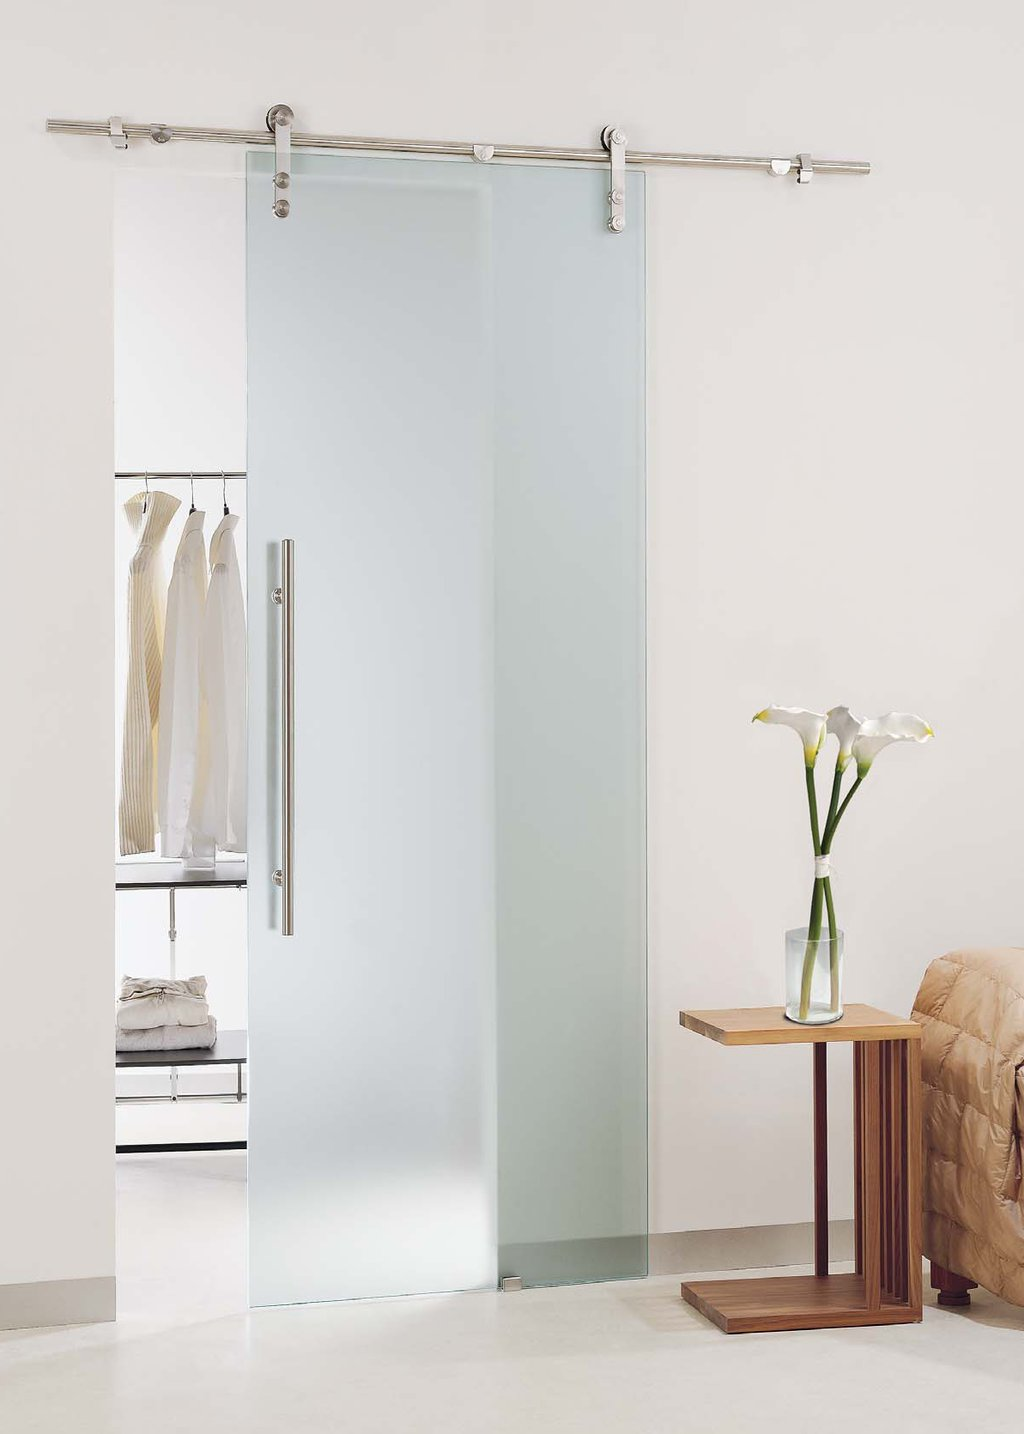 Glass doors empire glazing kitchens windows glass partitions glass doors  are a fantastic way to give